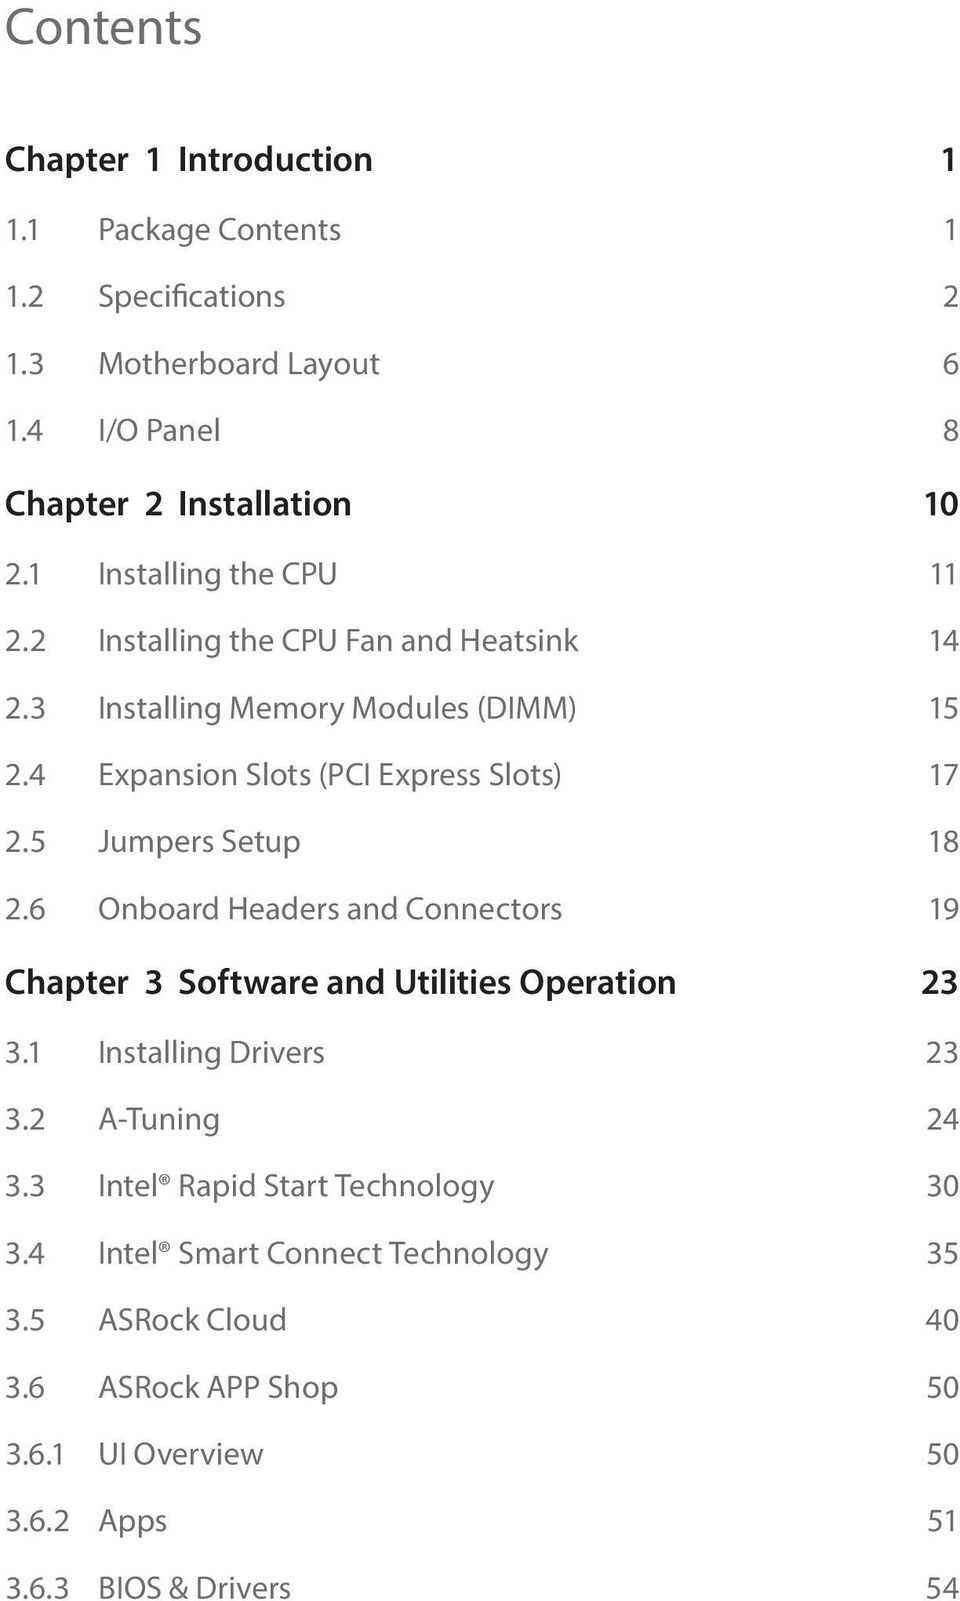 5 Jumpers Setup 18 2.6 Onboard Headers and Connectors 19 Chapter 3 Software and Utilities Operation 23 3.1 Installing Drivers 23 3.2 A-Tuning 24 3.